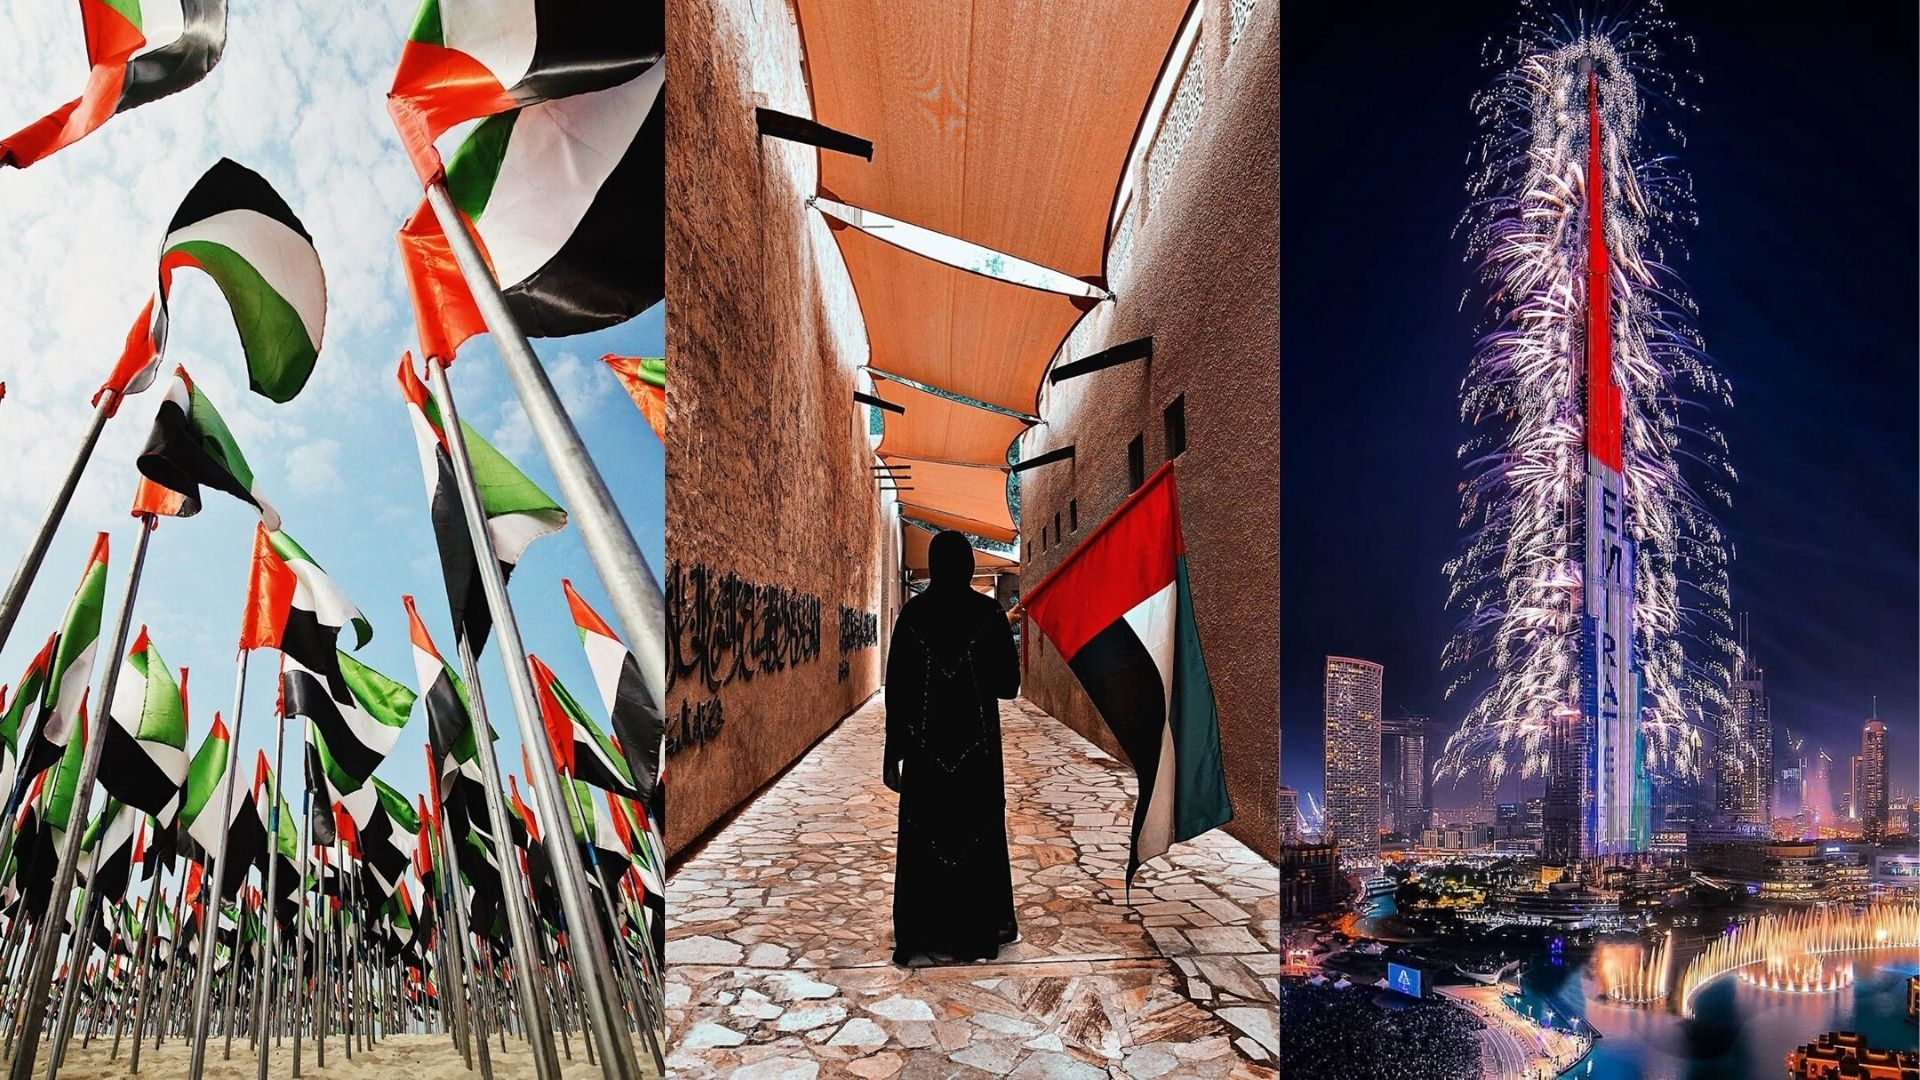 12 Of The Most Incredible Instagram Posts Celebrating UAE National Day